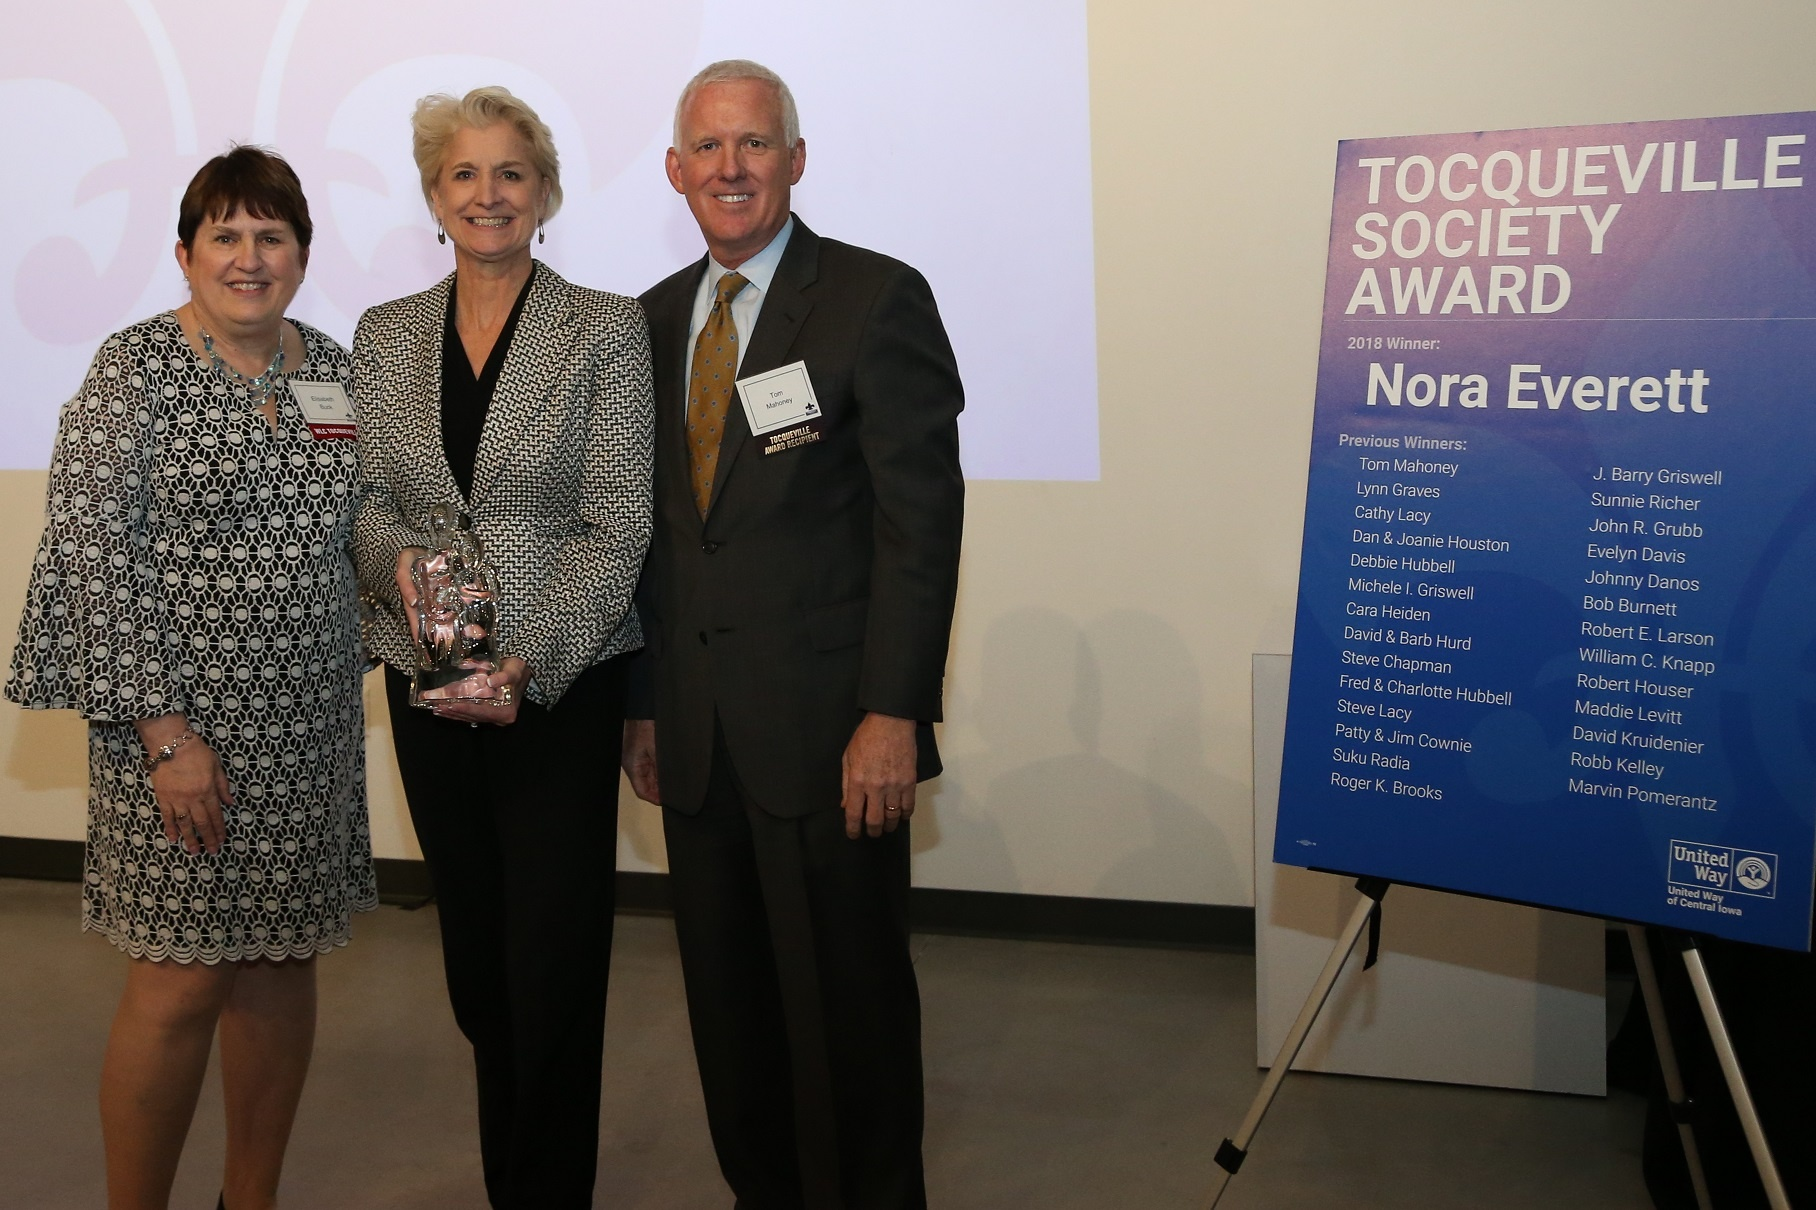 Nora Everett honored with Tocqueville Award